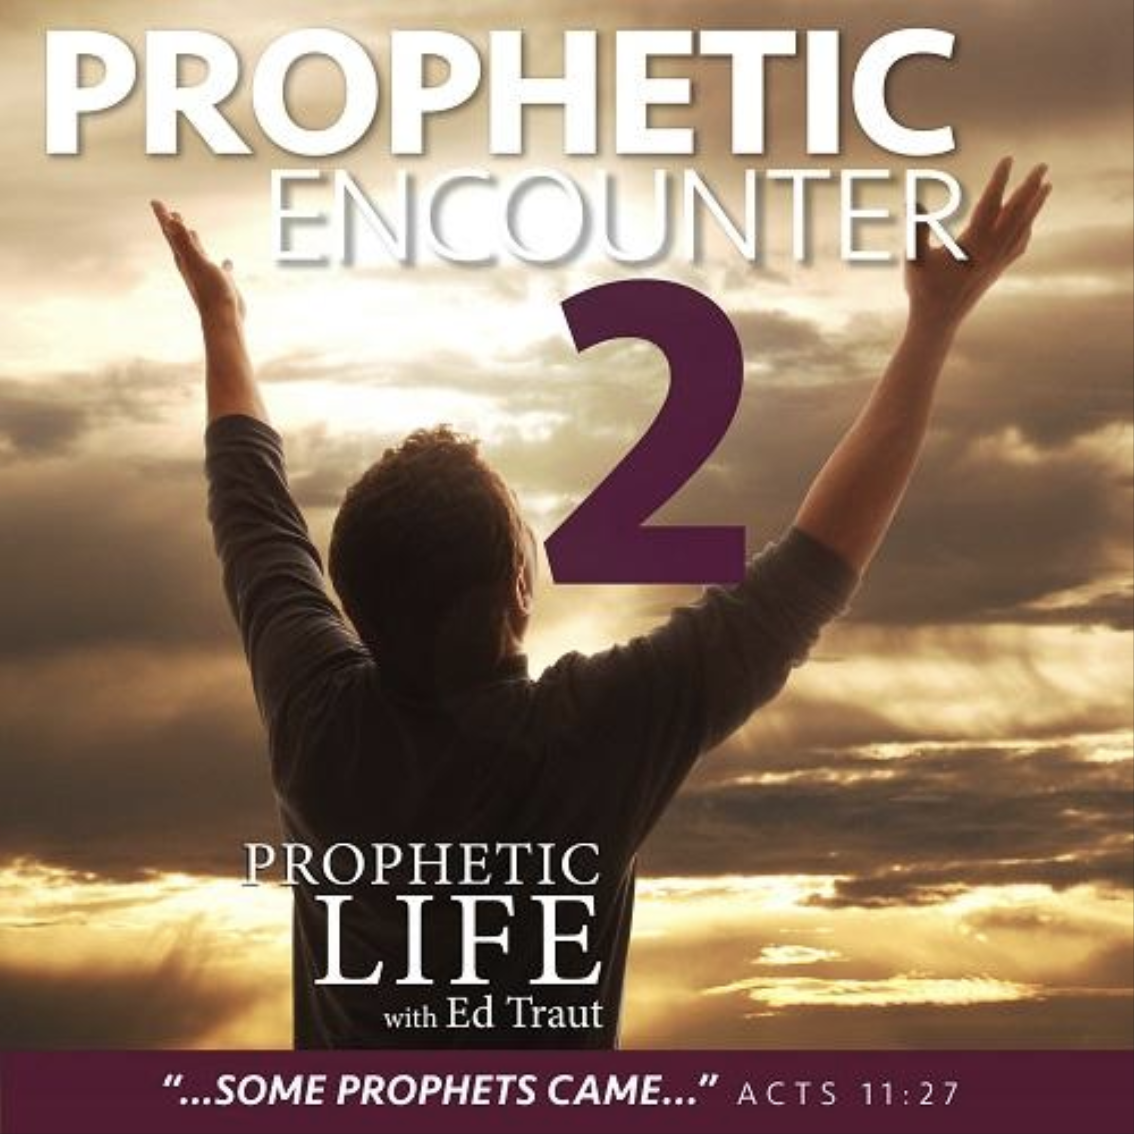 Encounter 2 - 7 Part Series: $1.99 each